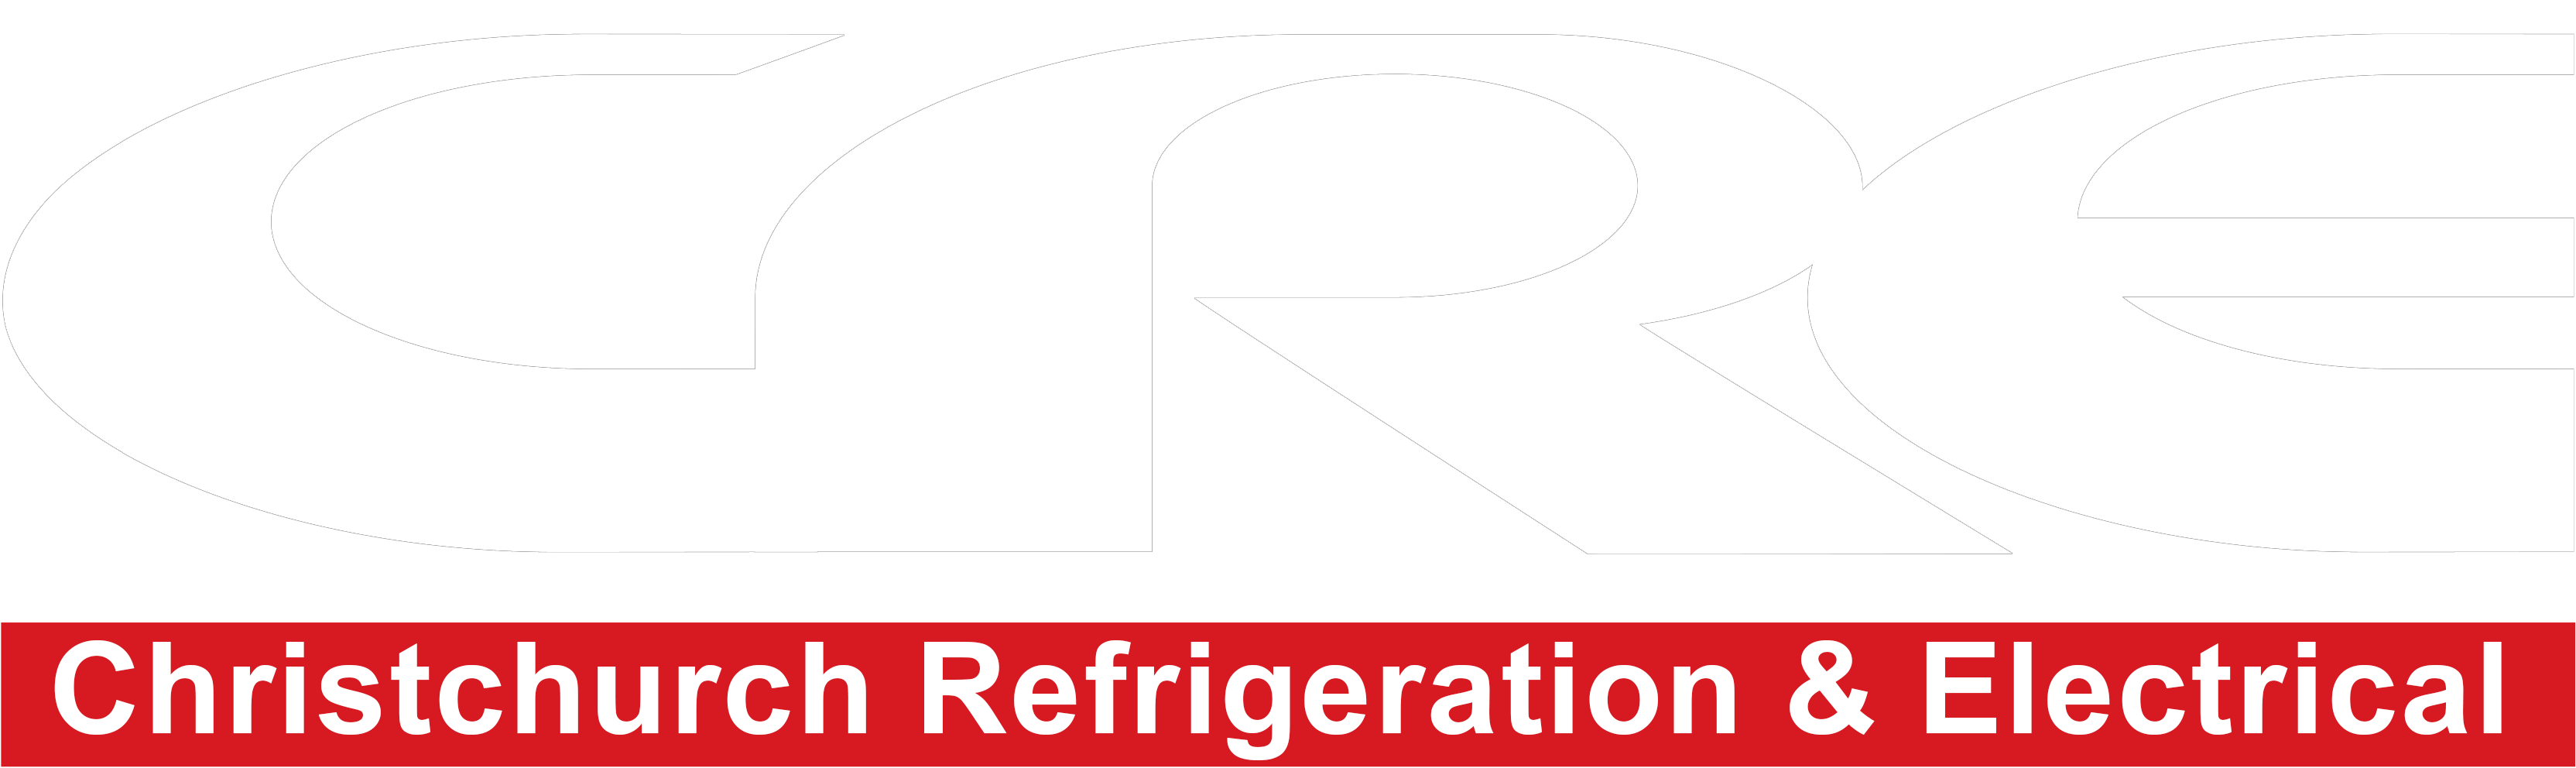 Christchurch Refrigeration